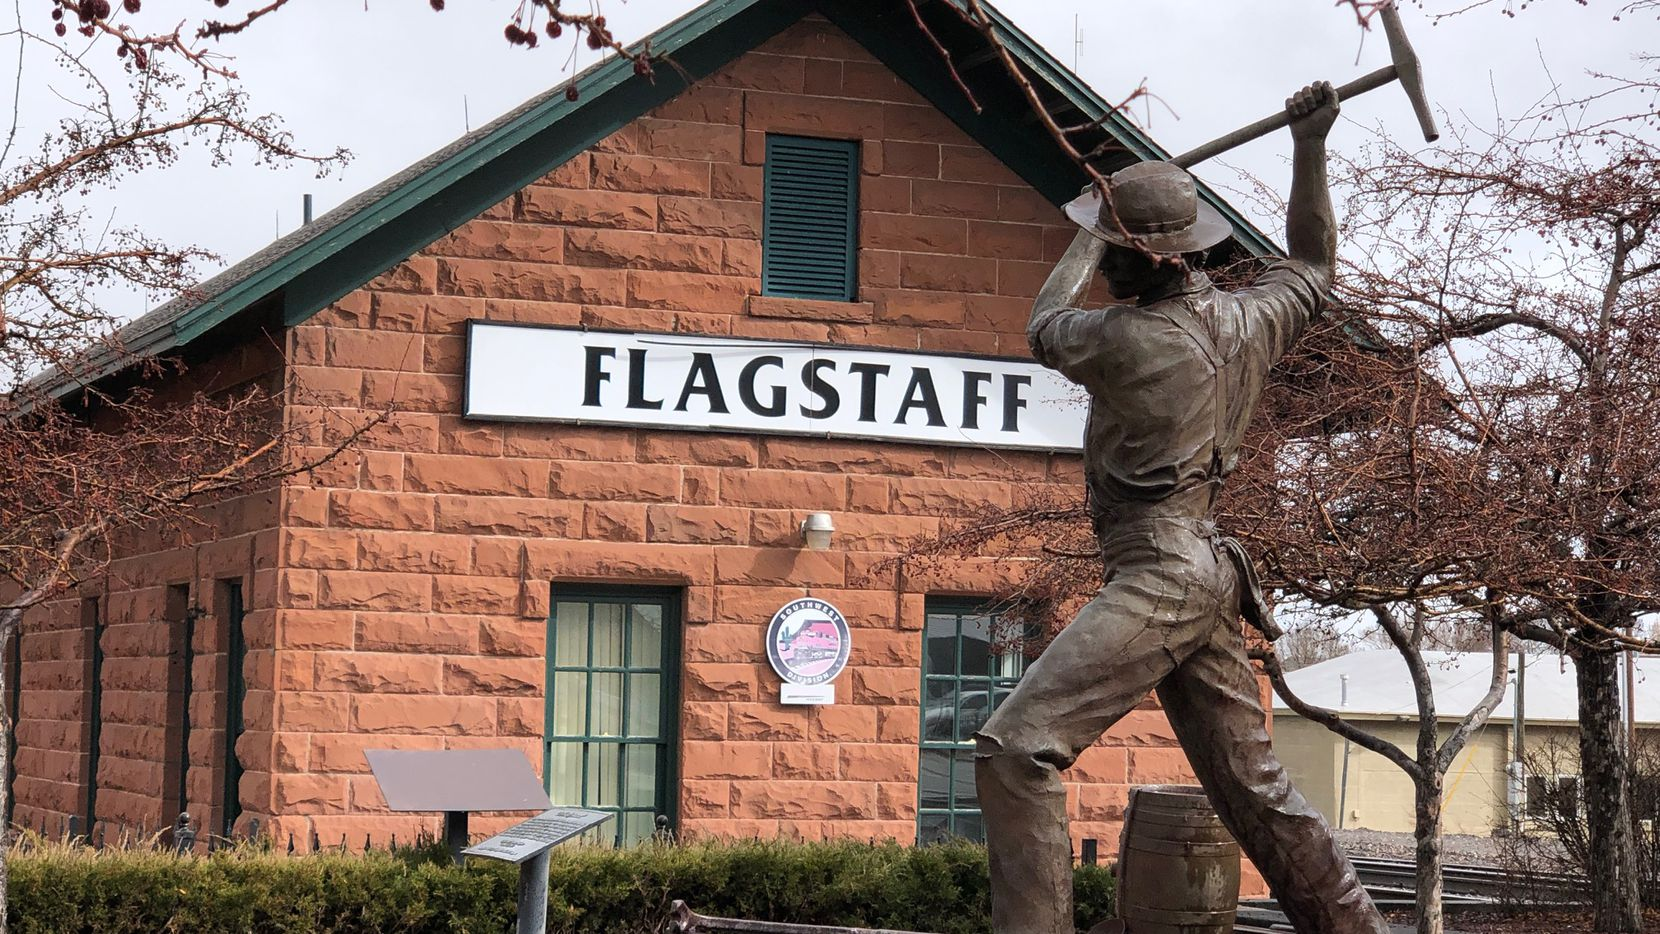 The historic train station in downtown Flagstaff.